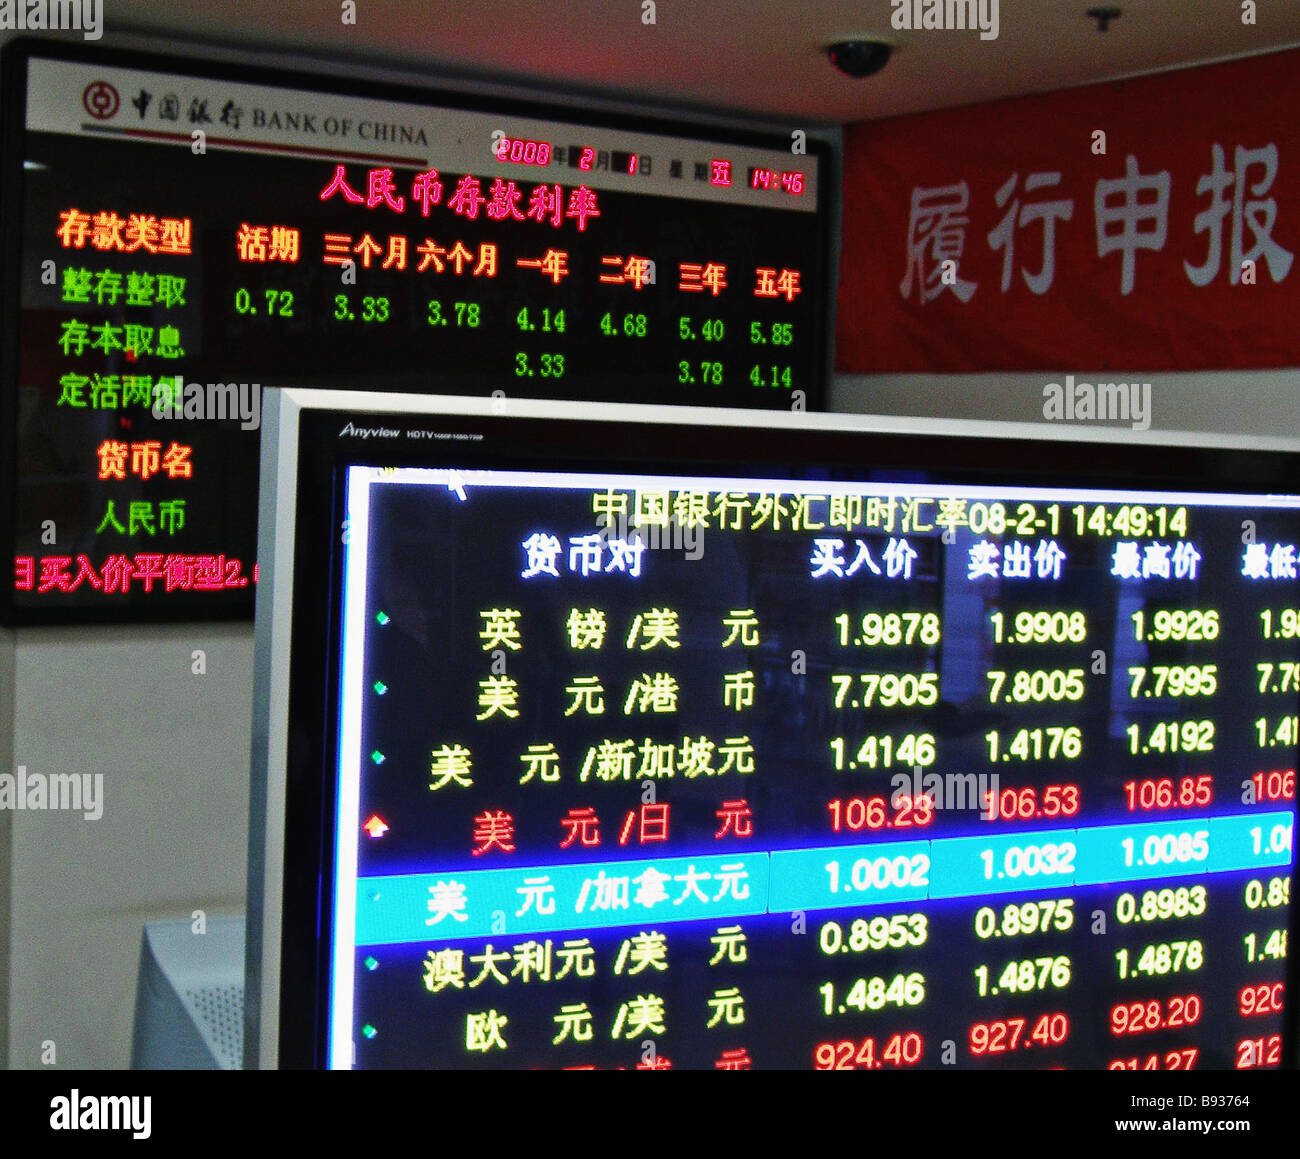 Deposit and foreign currency rates on monitoring boards in a Beijing office of the Bank of China - Stock Image